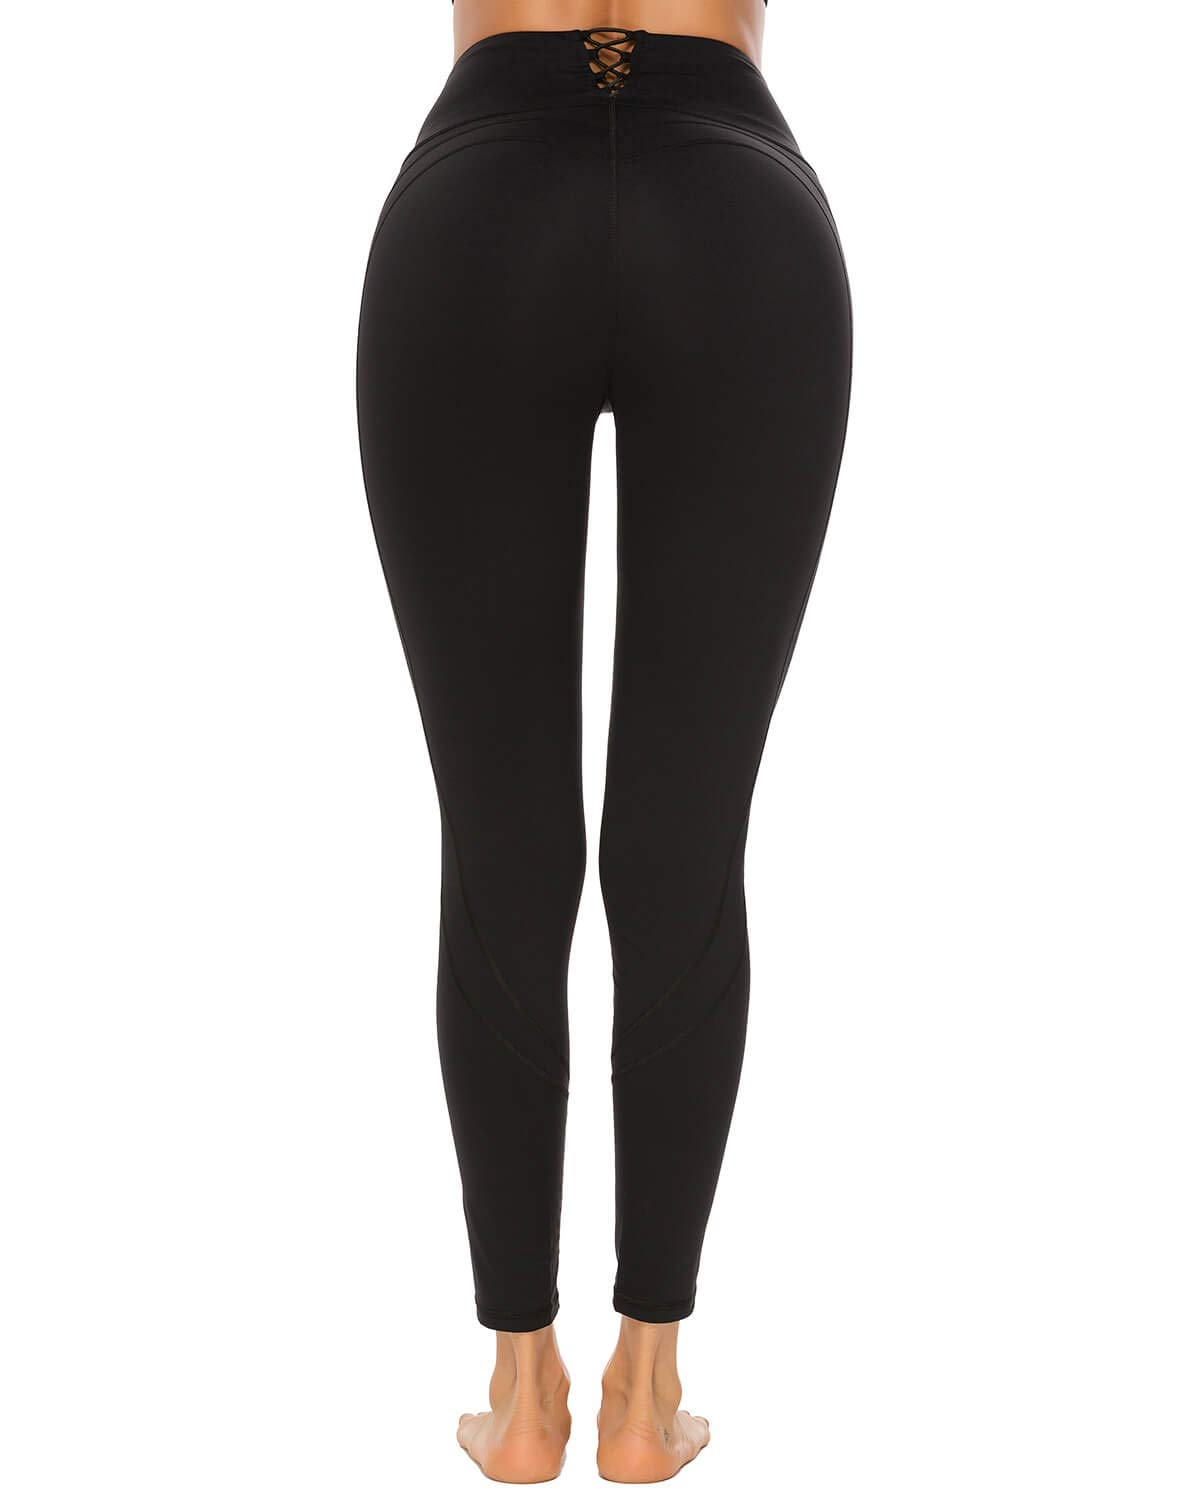 X-HERR Women High Waisted Compression Yoga Pants Sport Gym Workout Leggings Tights